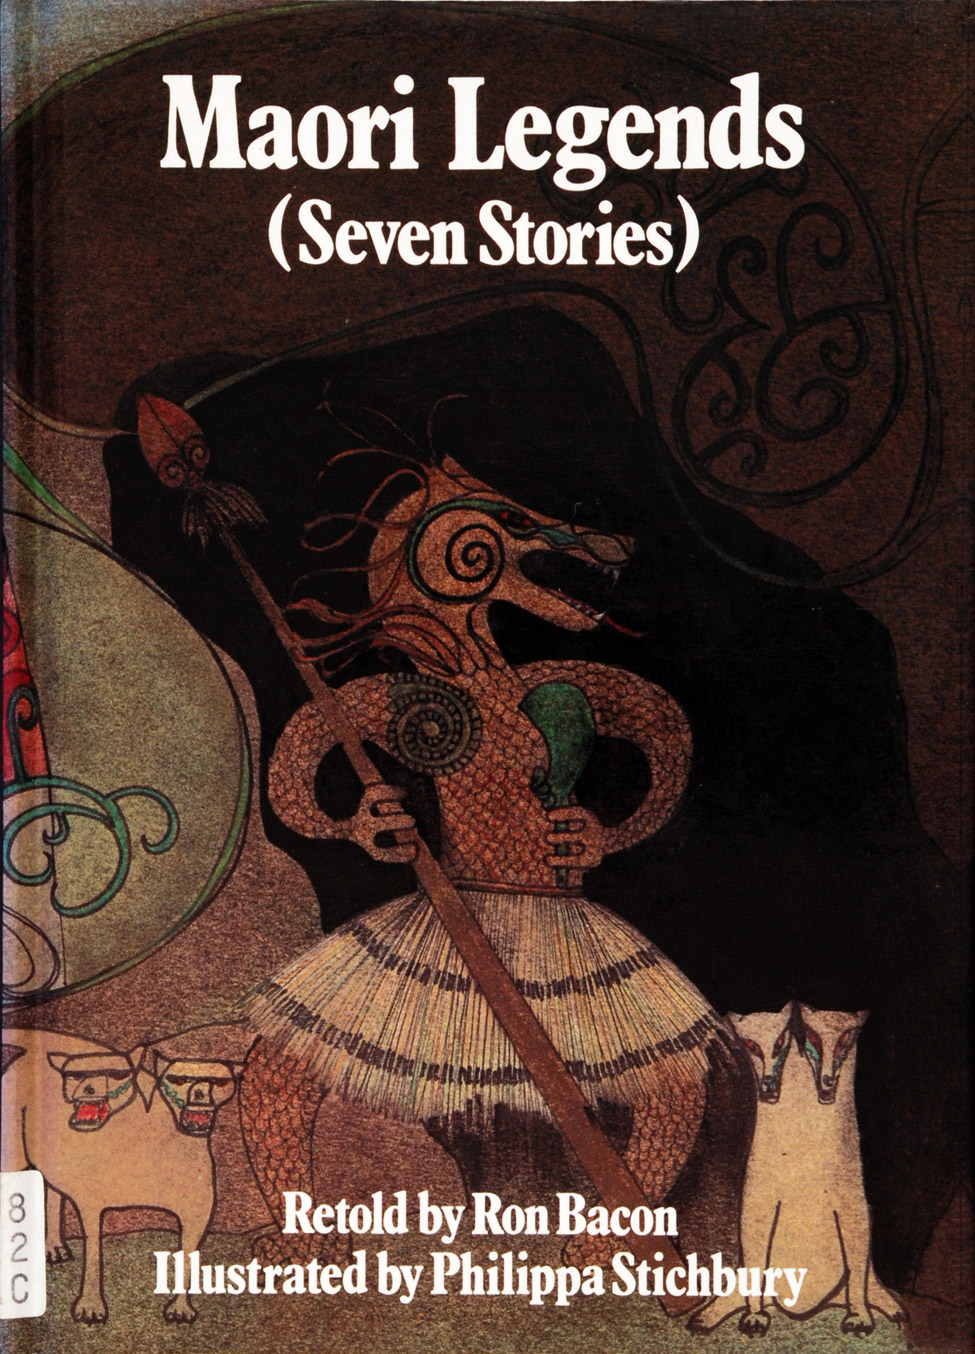 Joy Cowley (ed.). <i>Maori Legends (Seven Stories) Retold by Ron Bacon; Illustrated by Philippa Stichbury. </i> Auckland: Shortland Educational Publications, 1984.